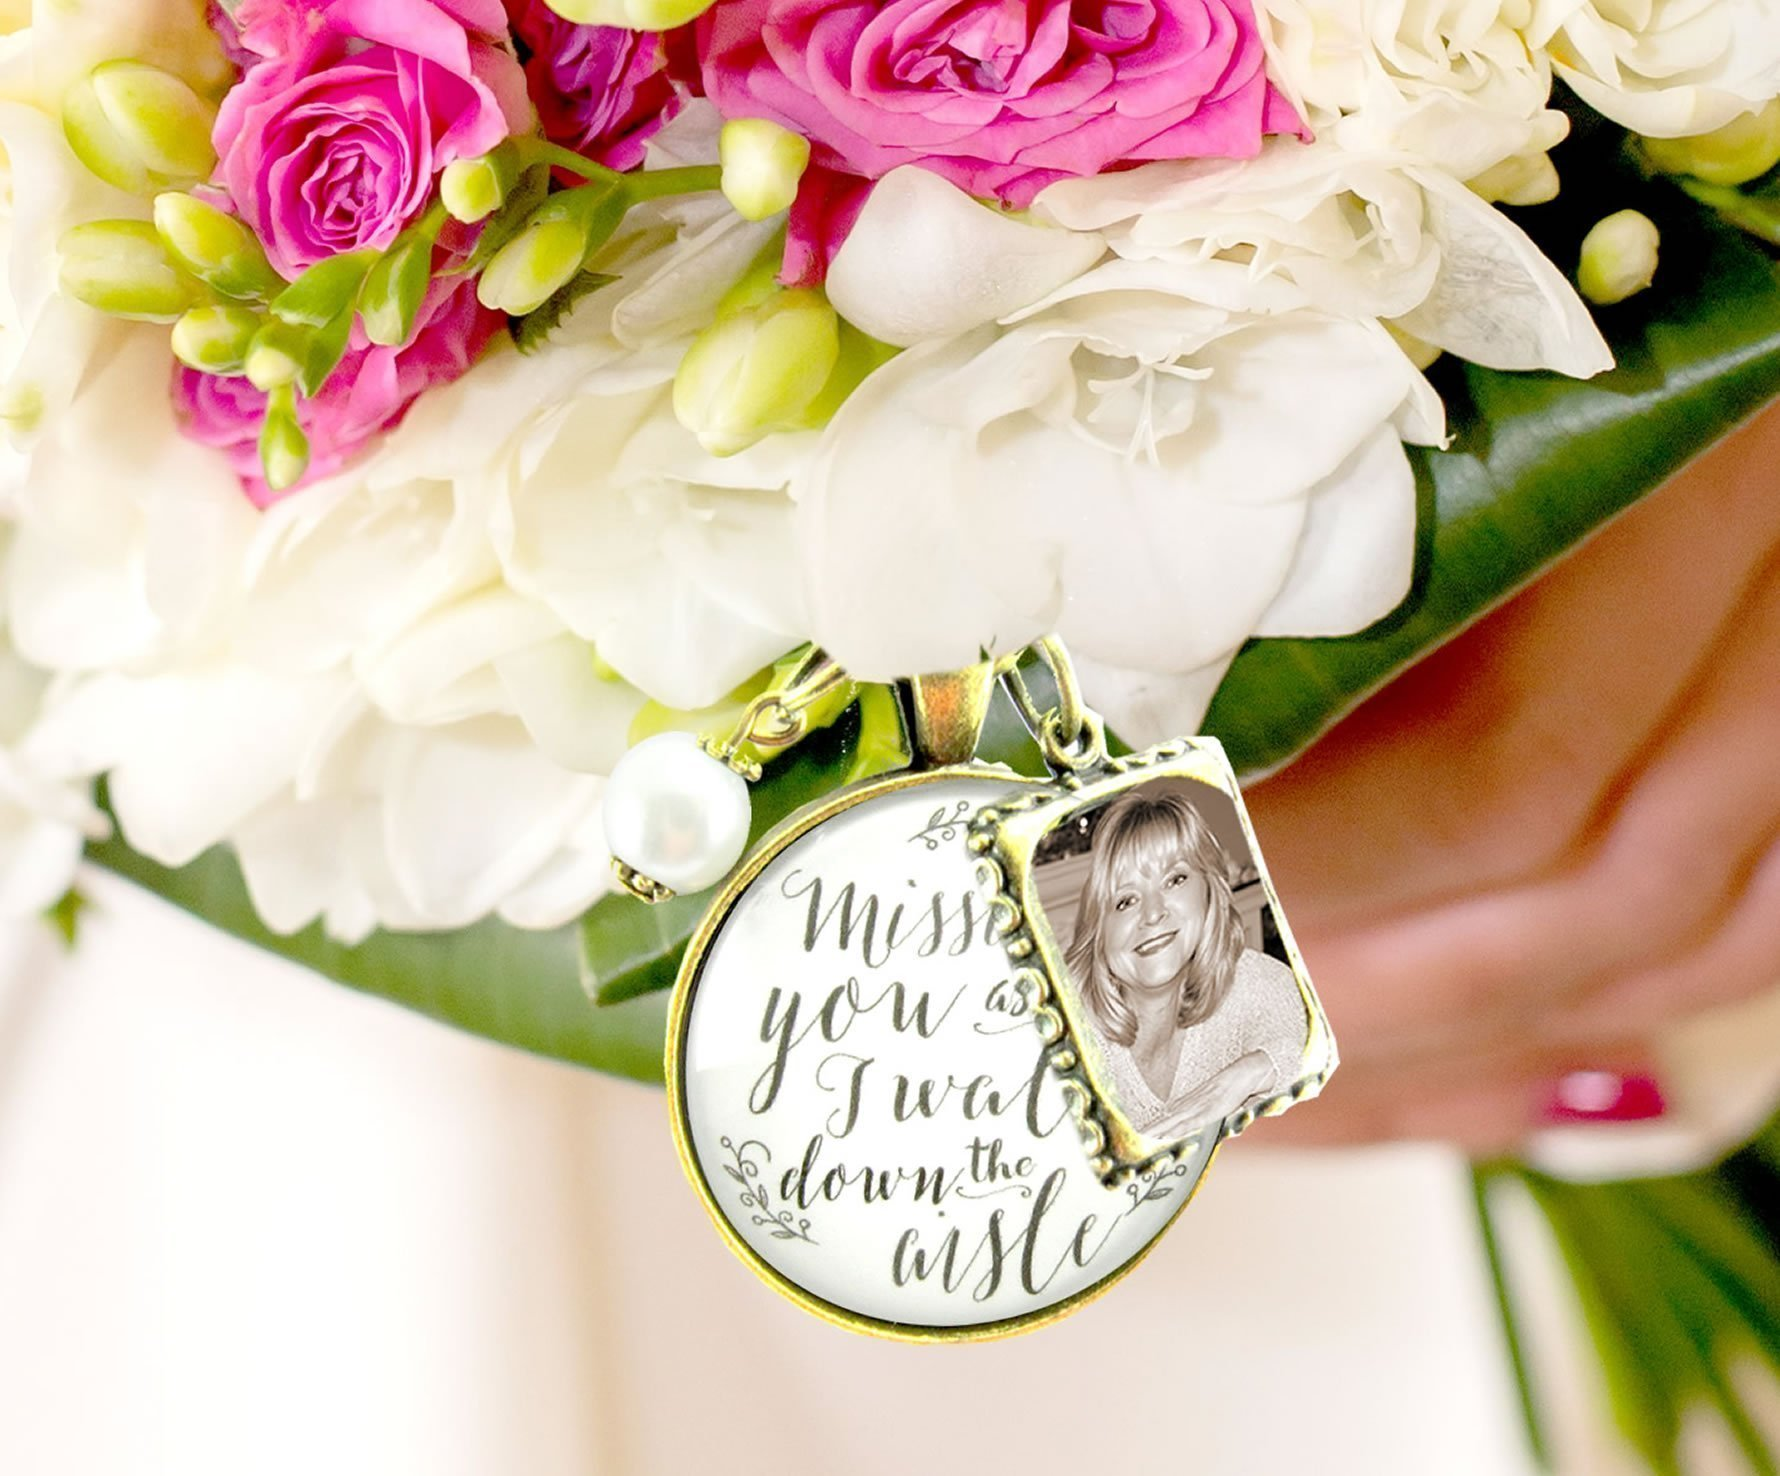 Wedding Bouquet Memory Charm Missing You As I Walk Down the Aisle, White Bridal Pendant Memorial Remembrance Photo Jewelry by Gutsy Goodness